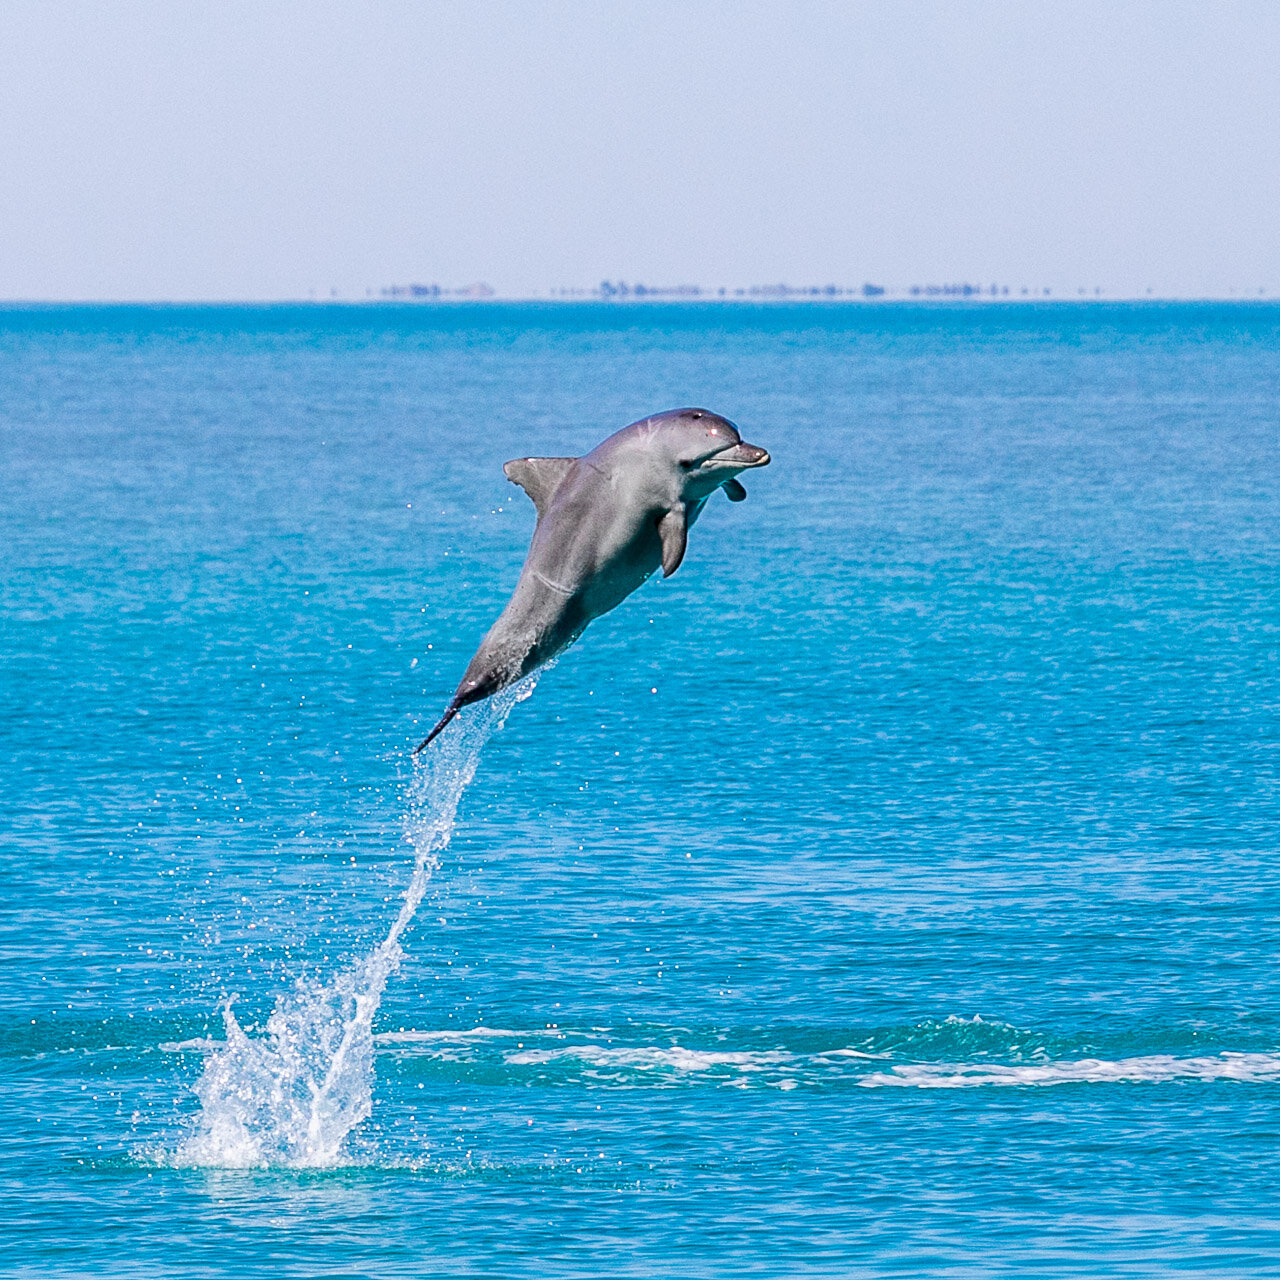 Aerial display by a bottlenose dolphin in Roebuck Bay, Broome